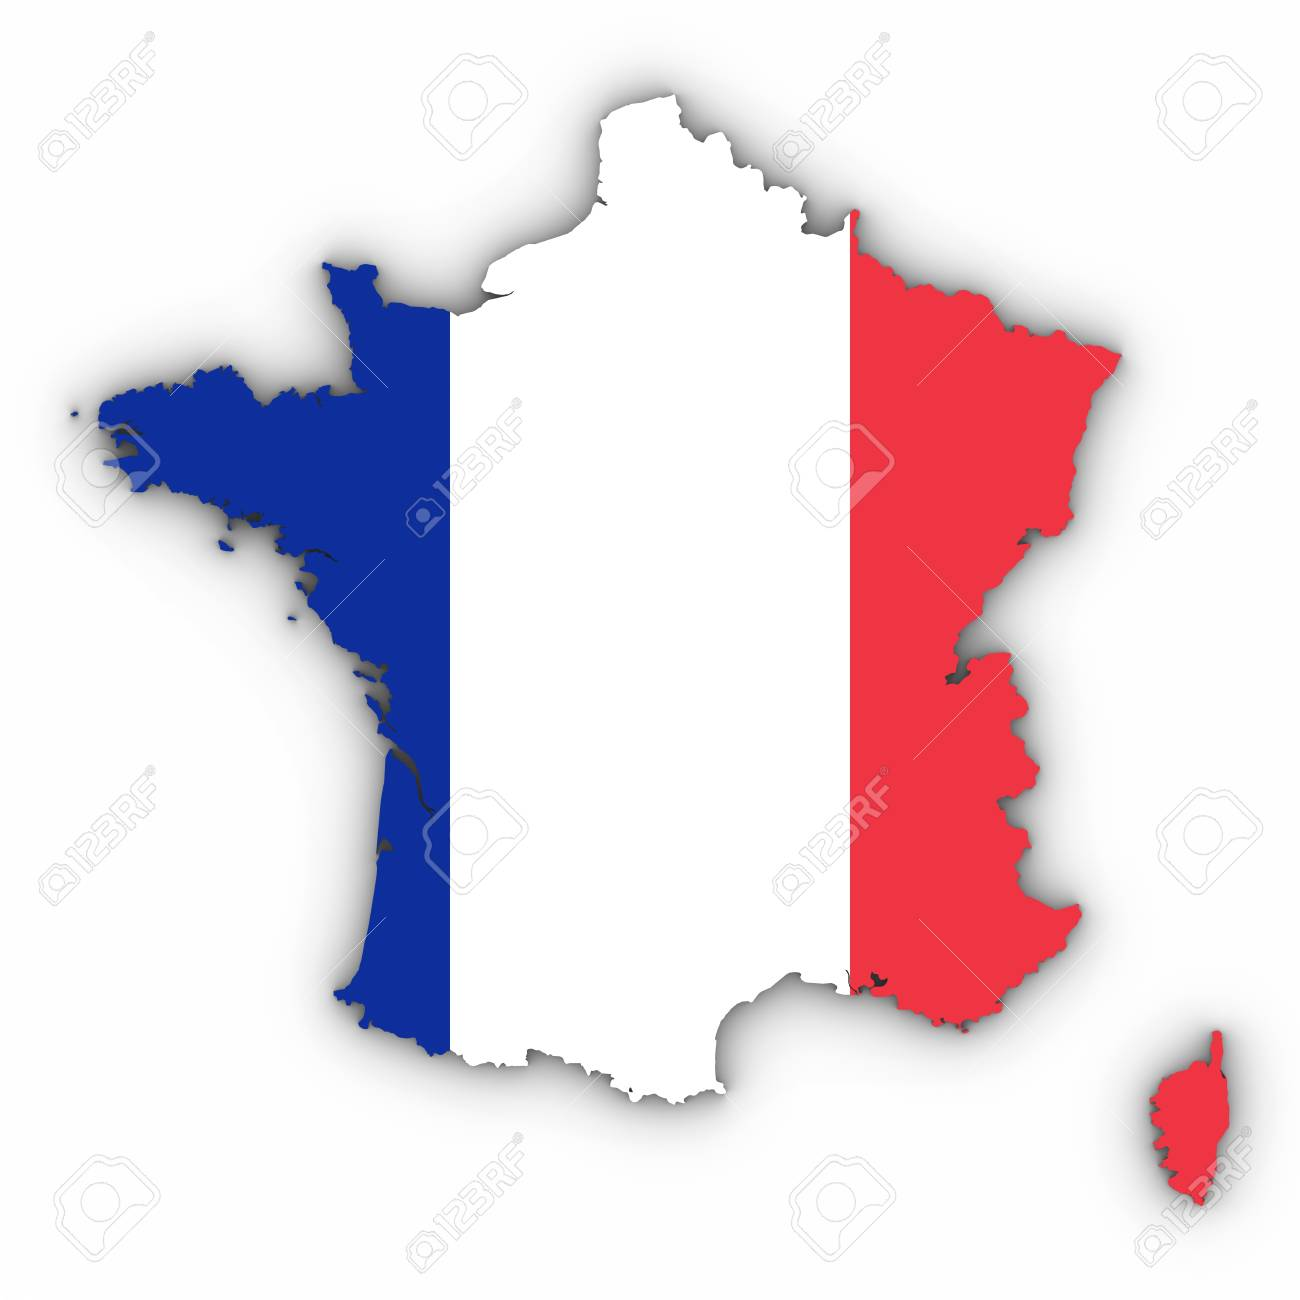 France Map Outline With French Flag On White With Shadows 3d Stock